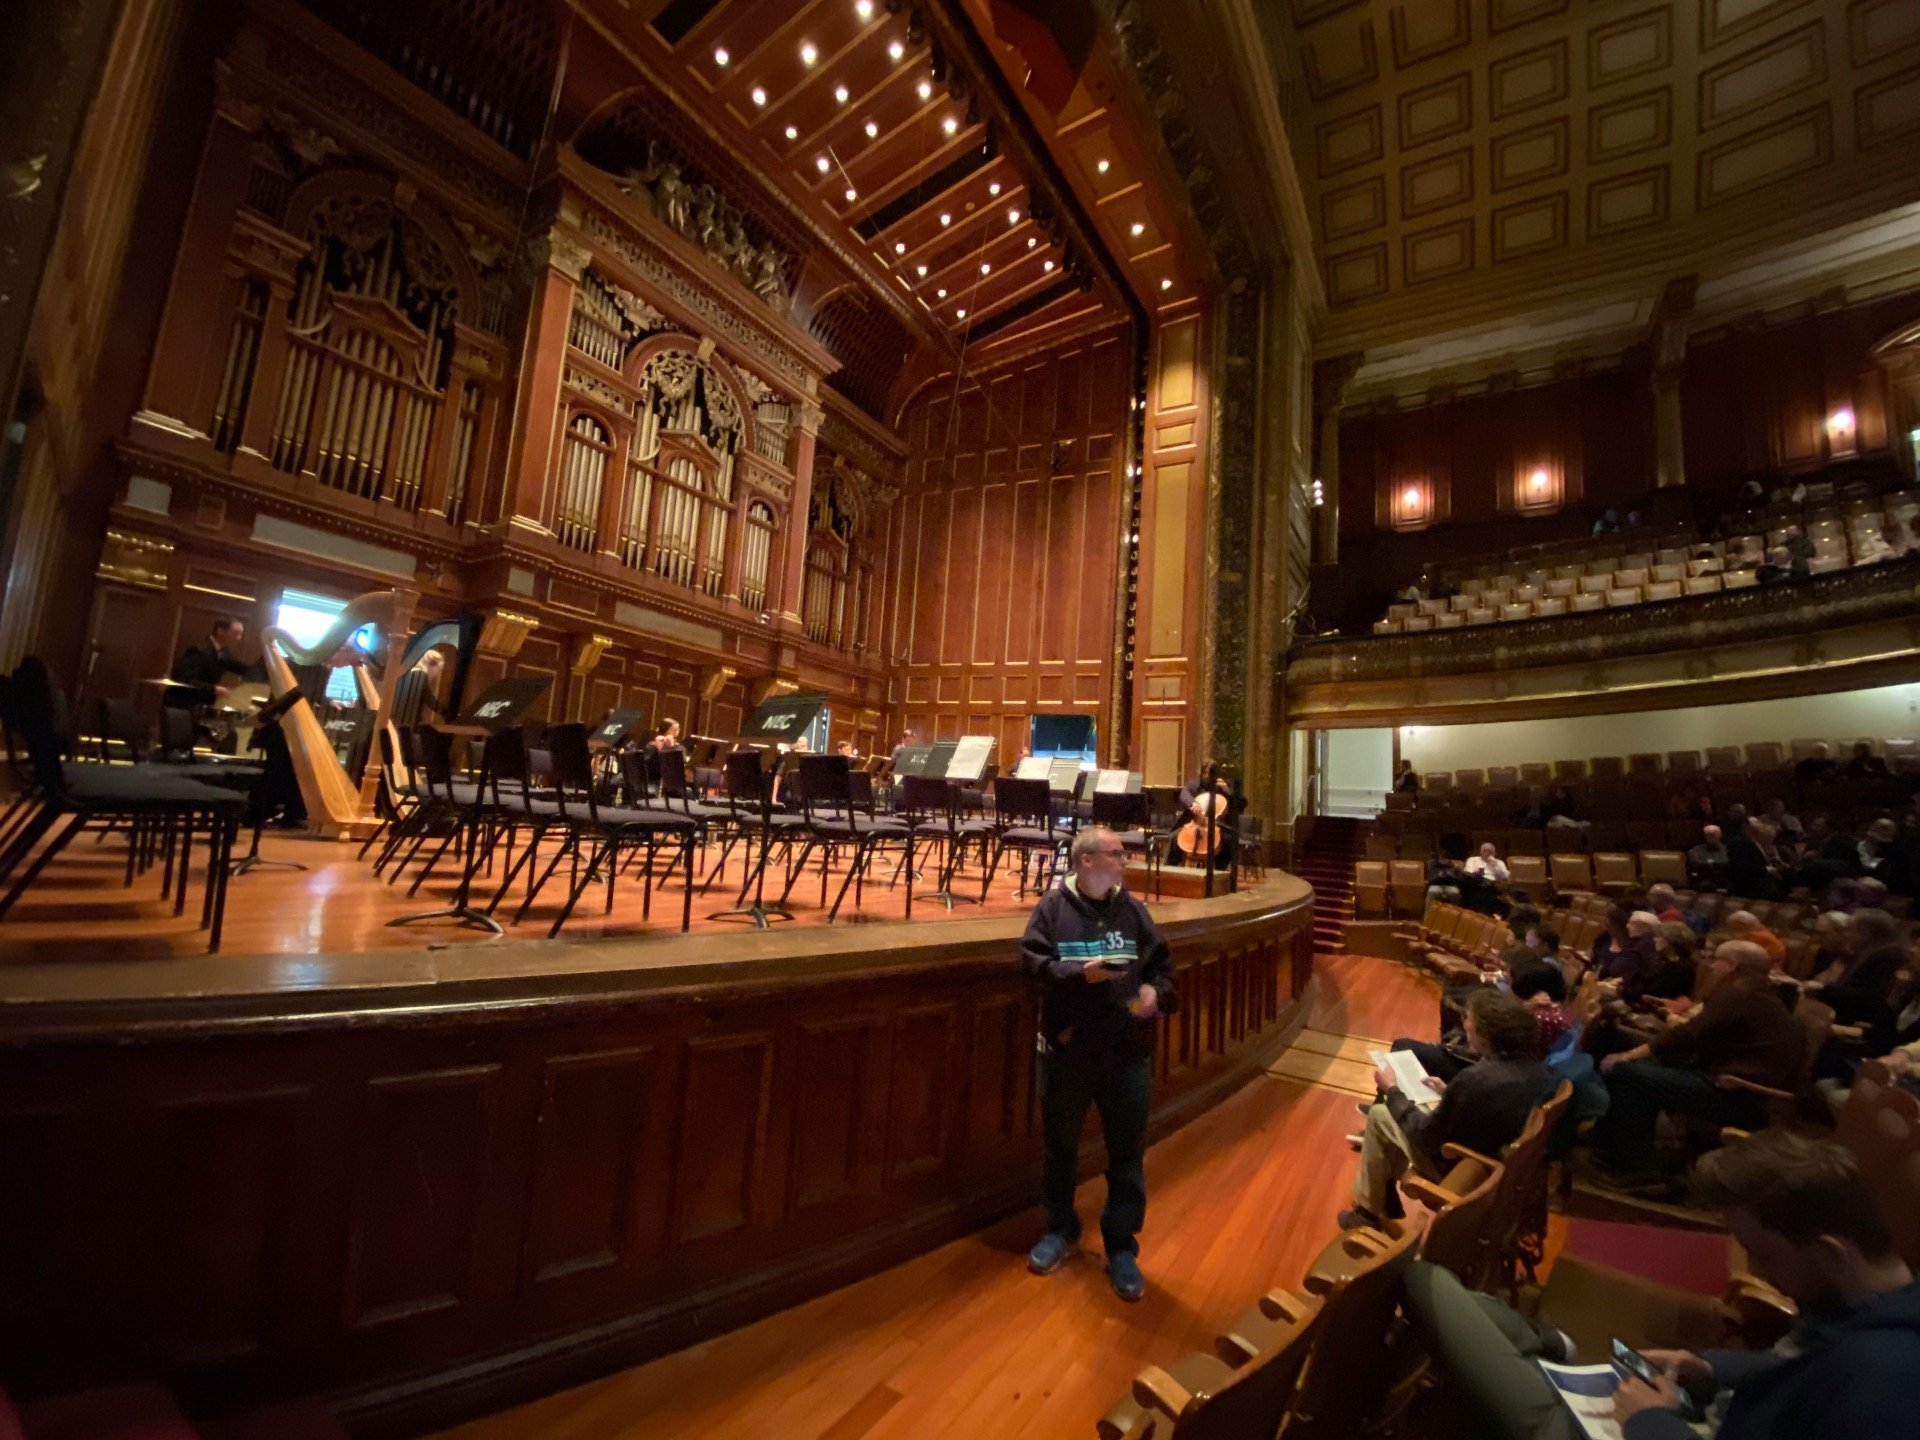 Jordan Hall at the New England Conservatory  Section Orchestra Left Row N Seat 7